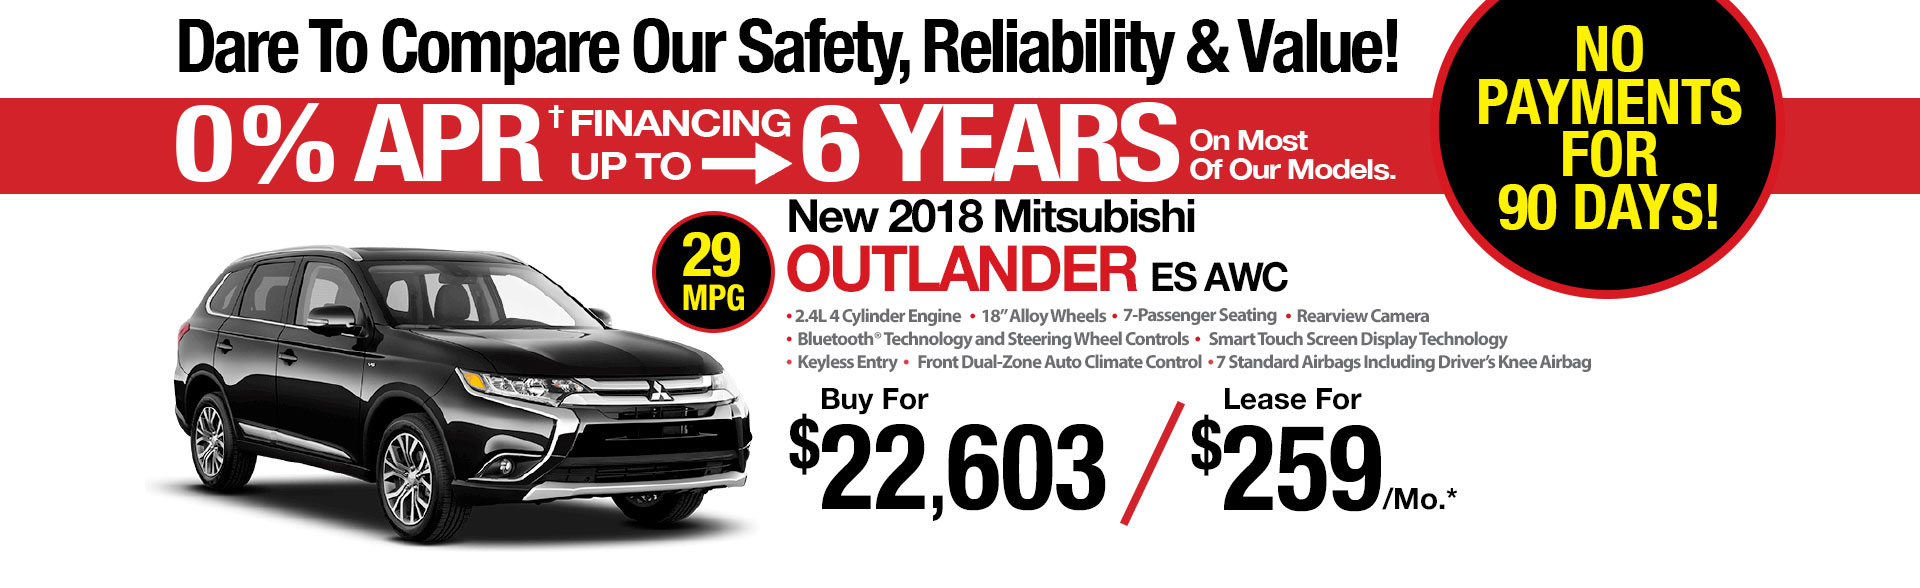 New Mitsubishi Outlander ES AWC Lease Special at Michaud Mitsubishi